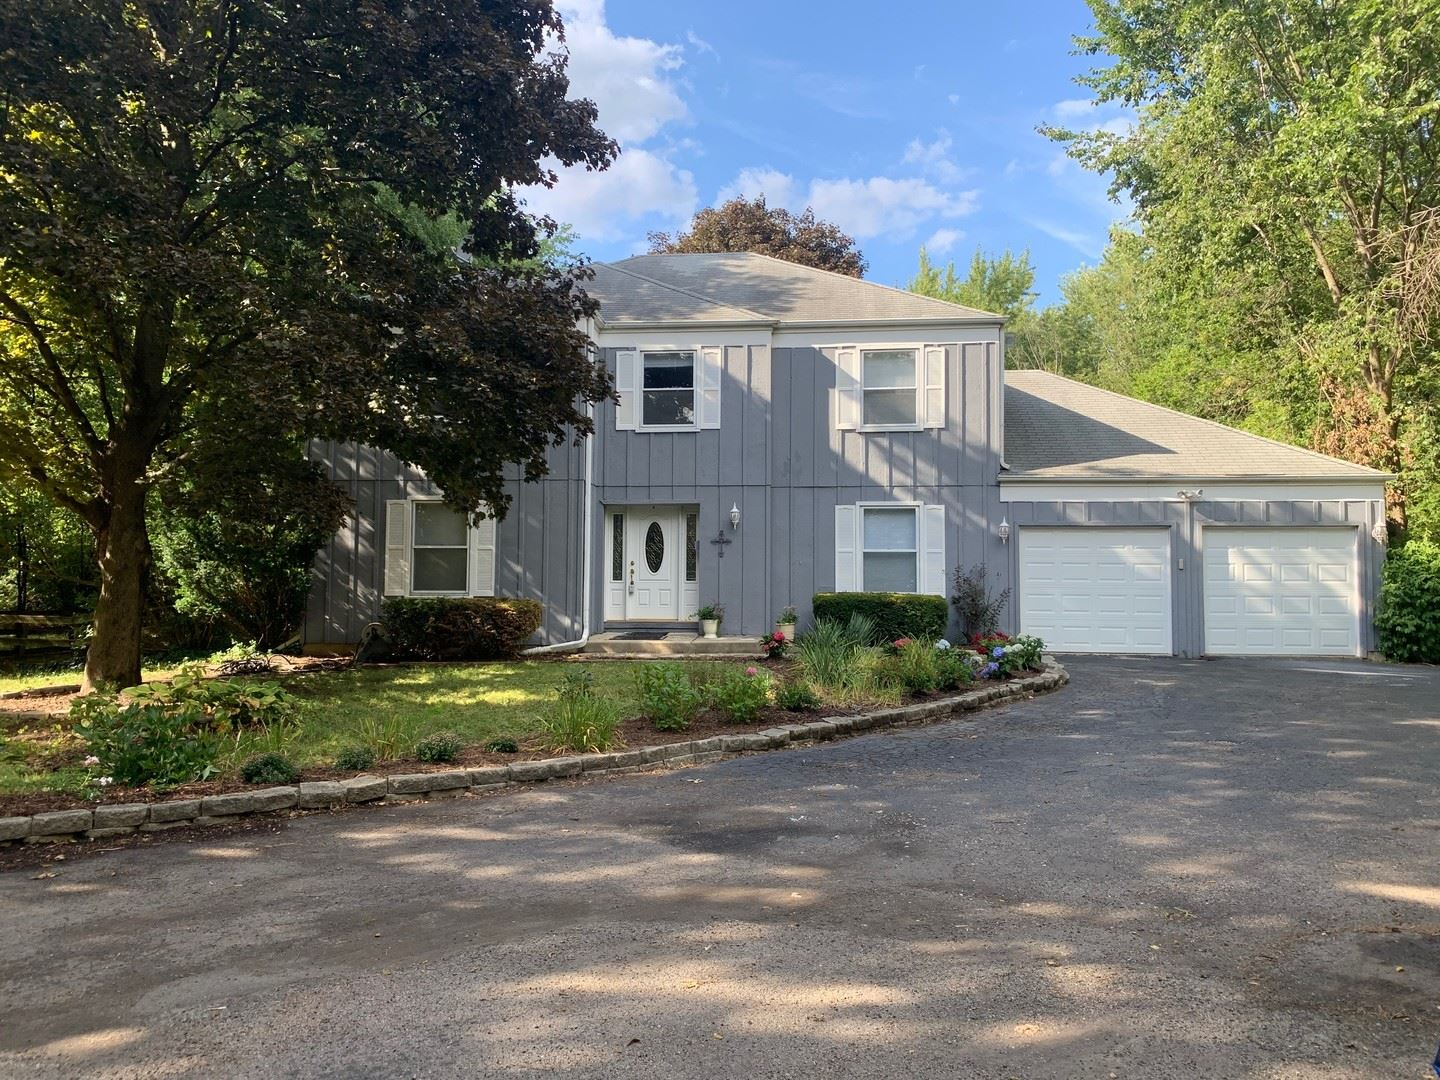 28W626 Hickory Lane, West Chicago, IL 60185 - #: 10933593